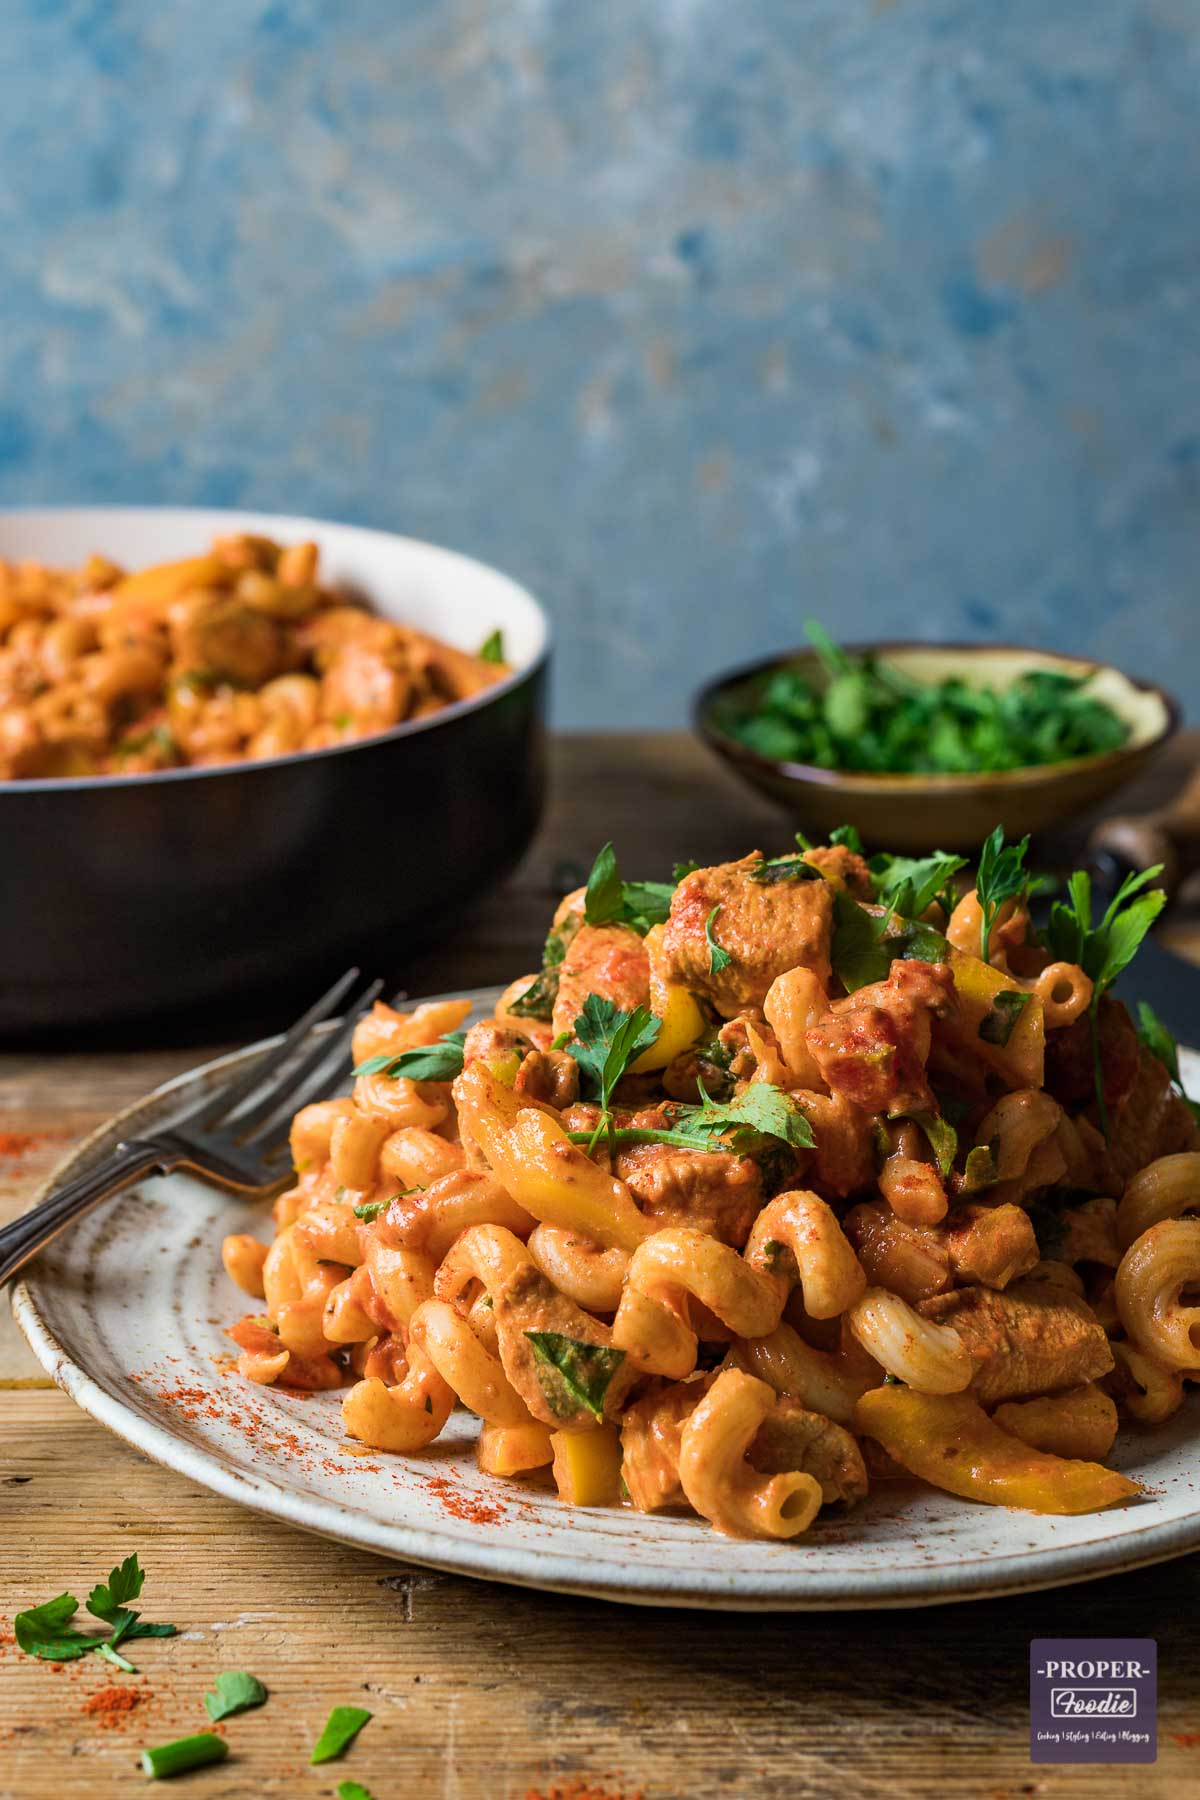 Creamy cajun chicken pasta recipe served on a plate with a pan of extra pasta in the background.